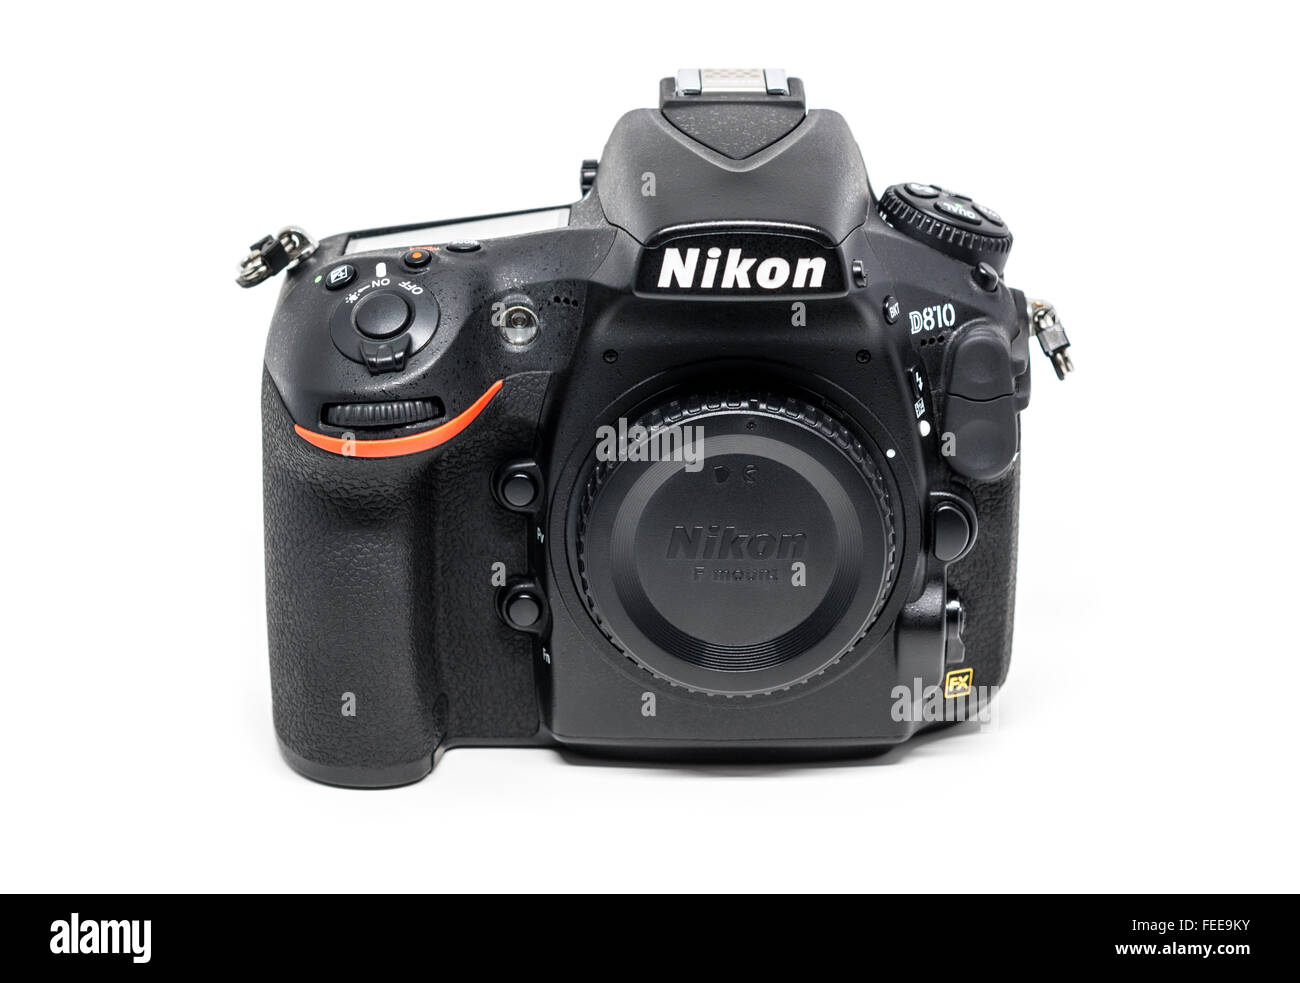 Camera Dslr Camera Without Lens ostfildern germany january 24 2016 a nikon d810 camera body without lens the first digital slr in nikons history